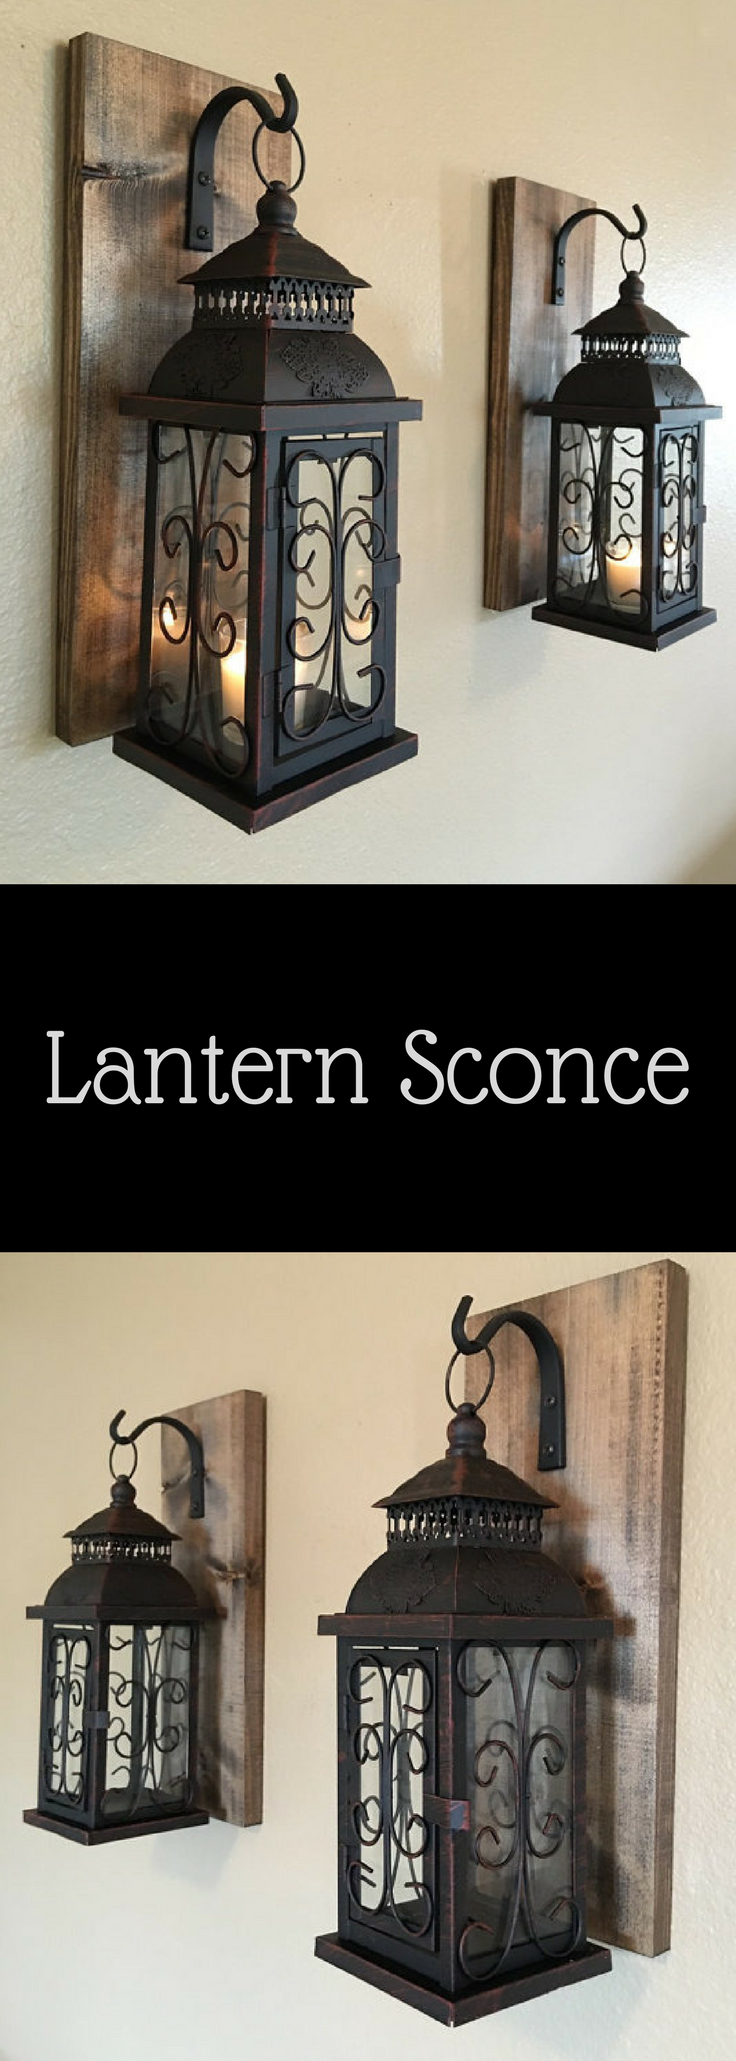 Lantern Pair Wall Decor Sconces Bathroom Home And Living Wrought Iron Hook Rustic Wood Boards Bedroom Diy Country